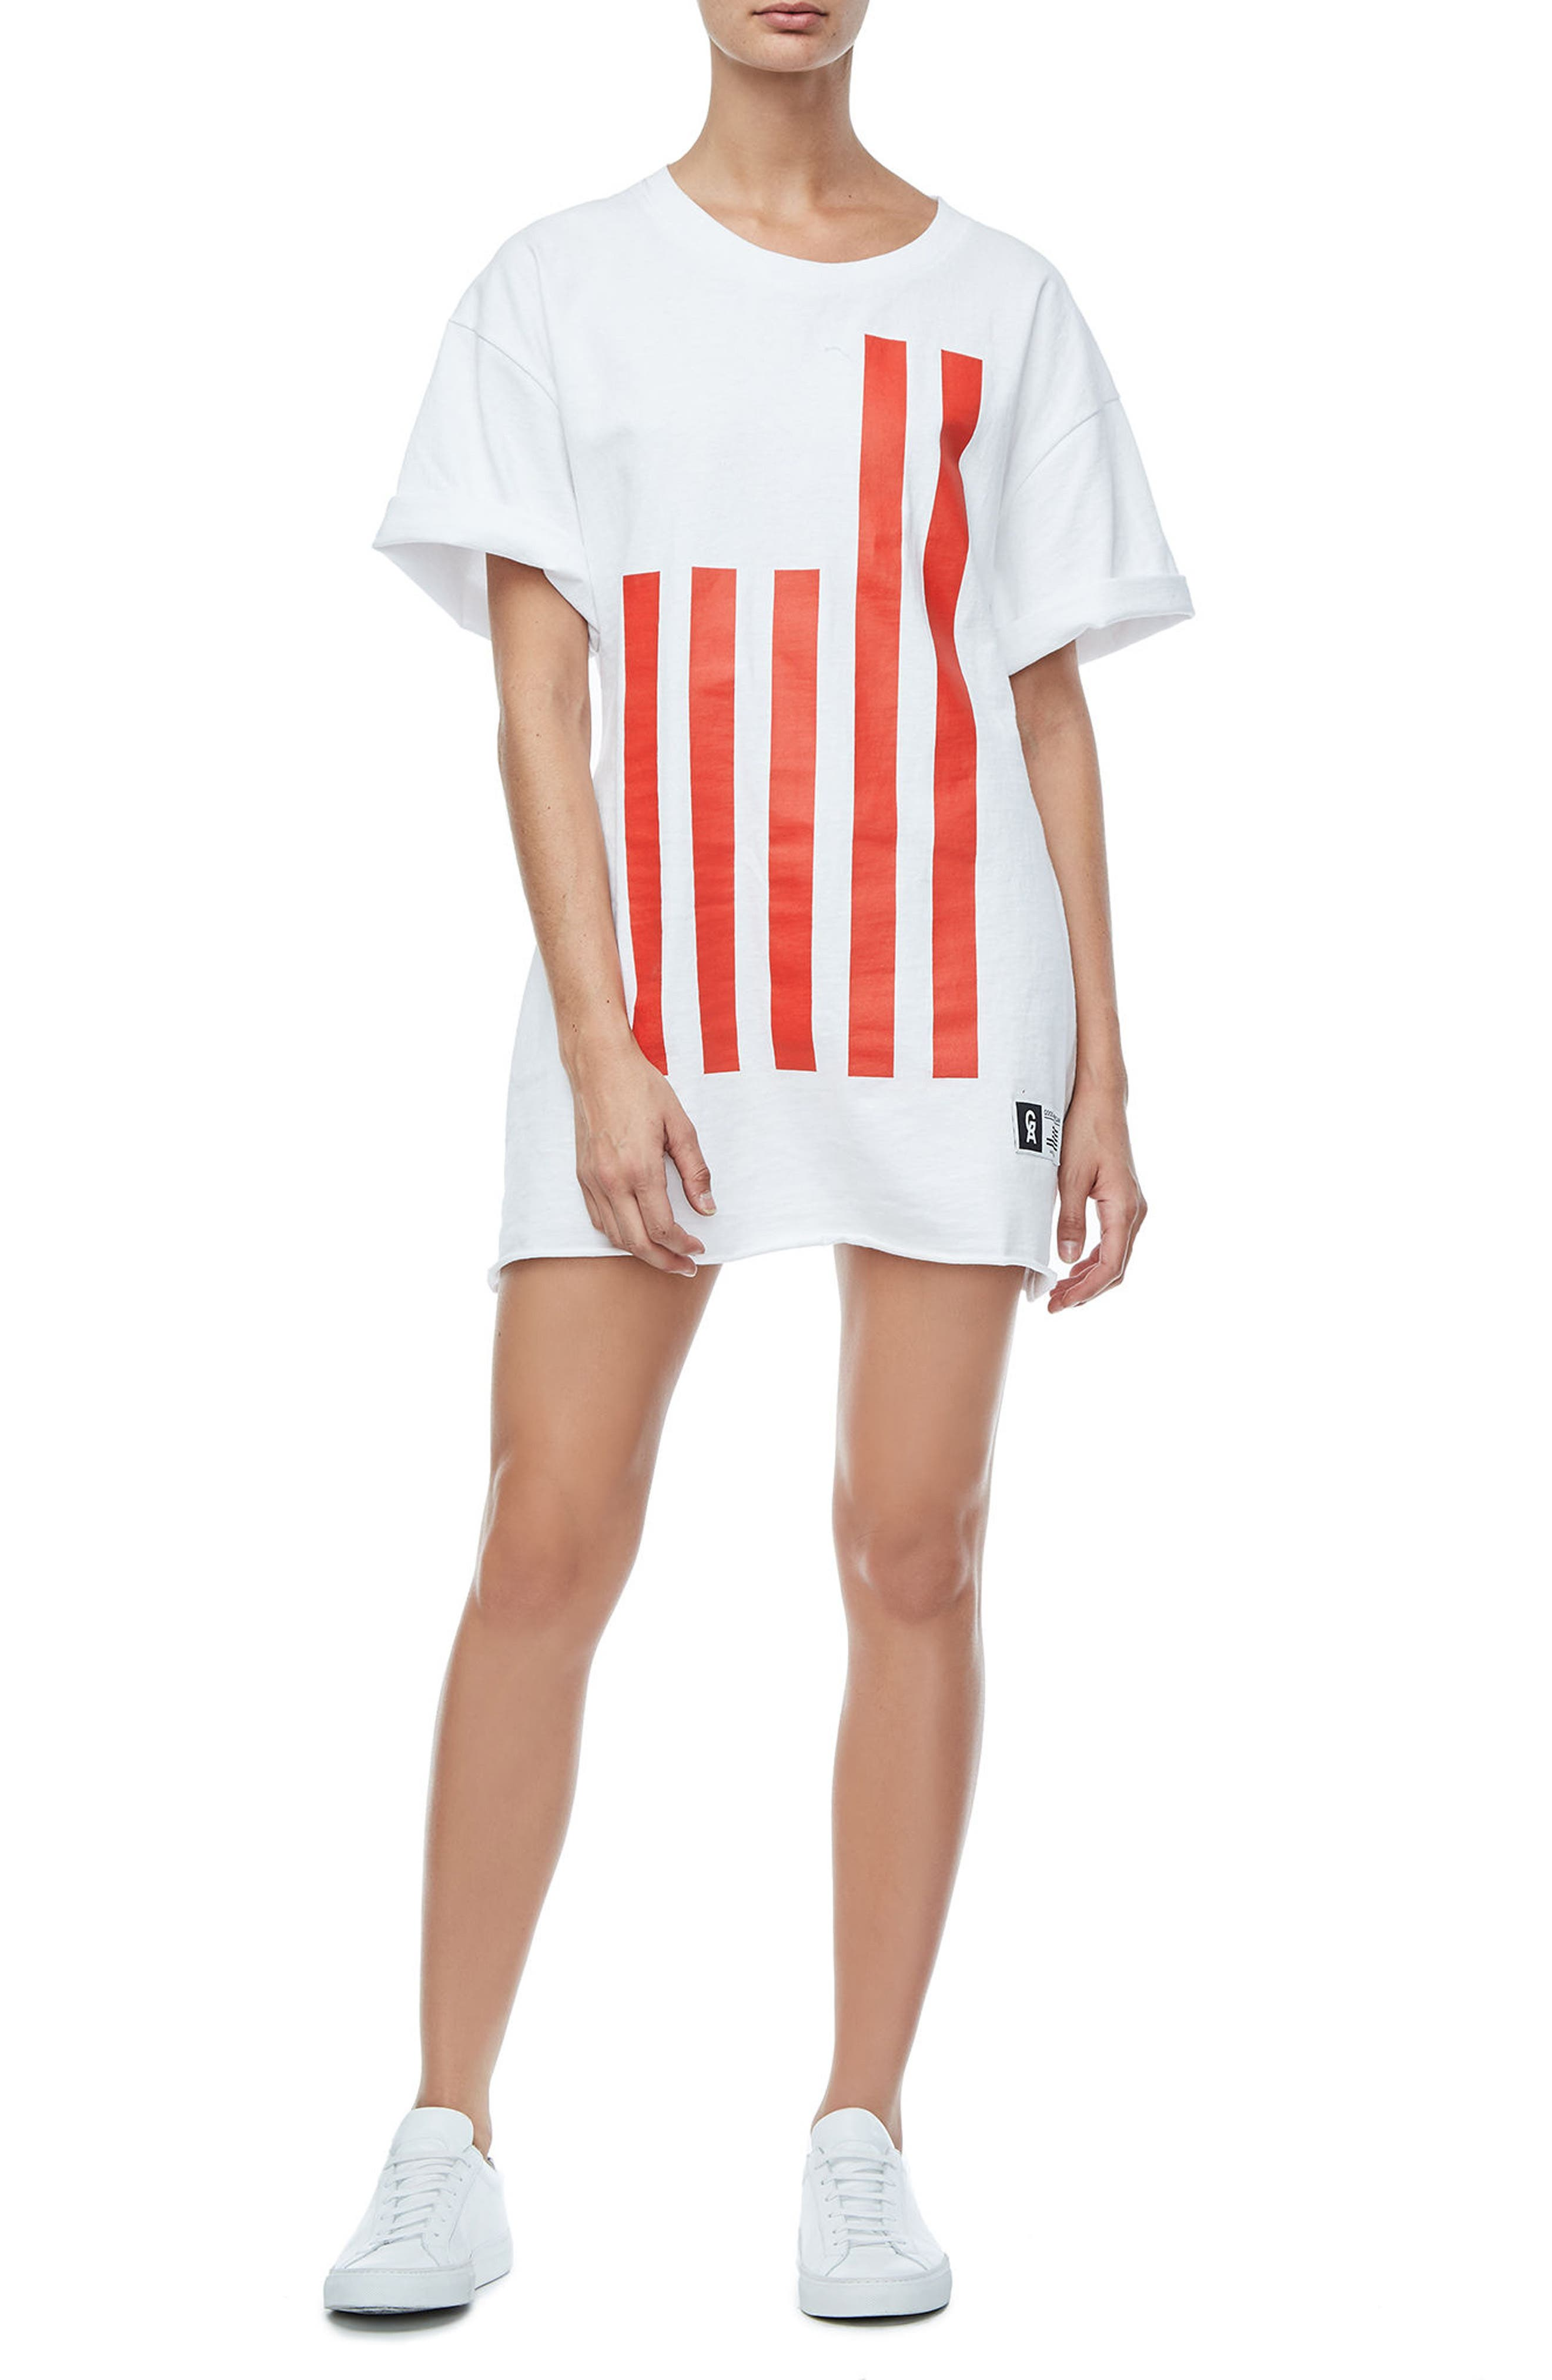 Goodies Graphic Oversize Tee,                             Alternate thumbnail 2, color,                             White001